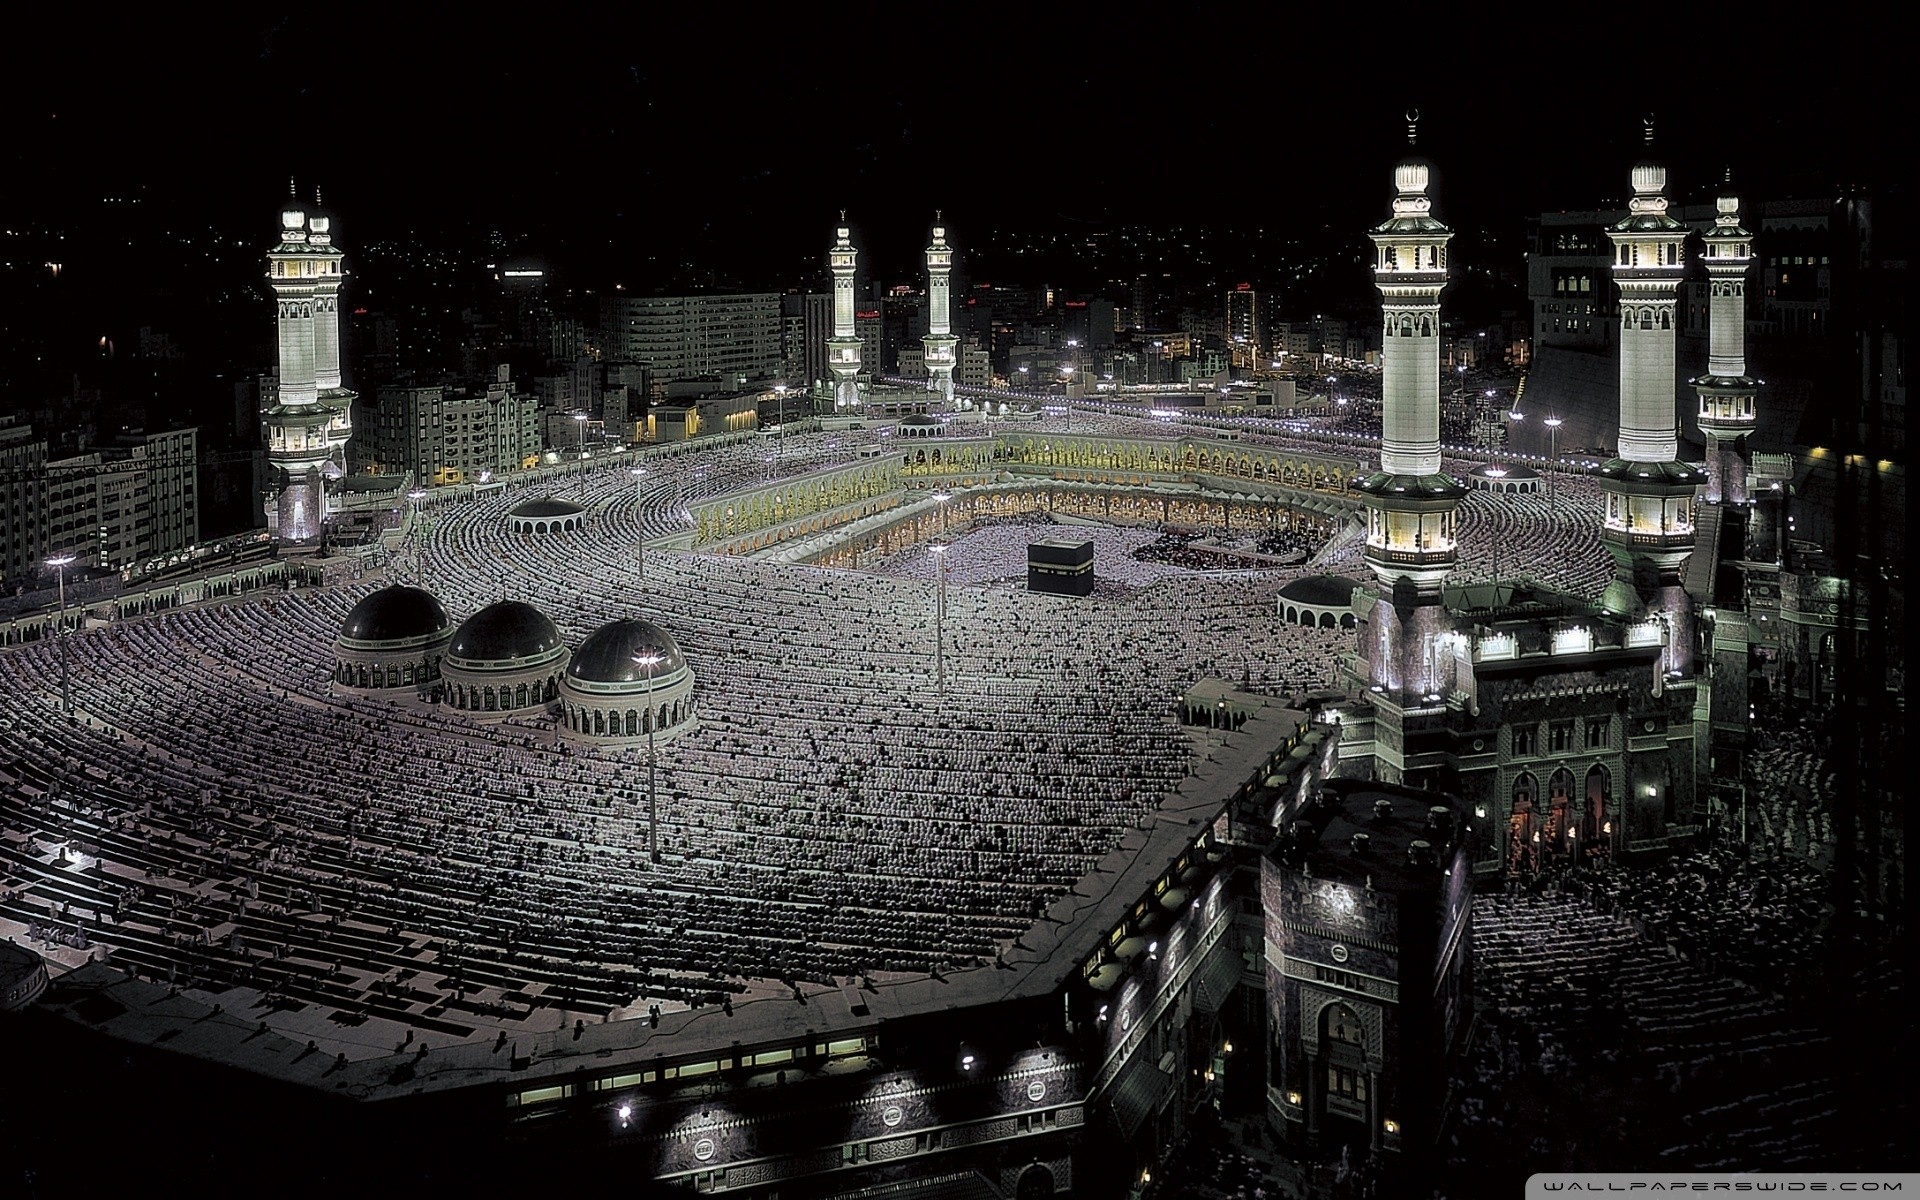 1920x1200 mecca kabe  wallpaper Knowledge HD WallpaperHi Res Knowledge